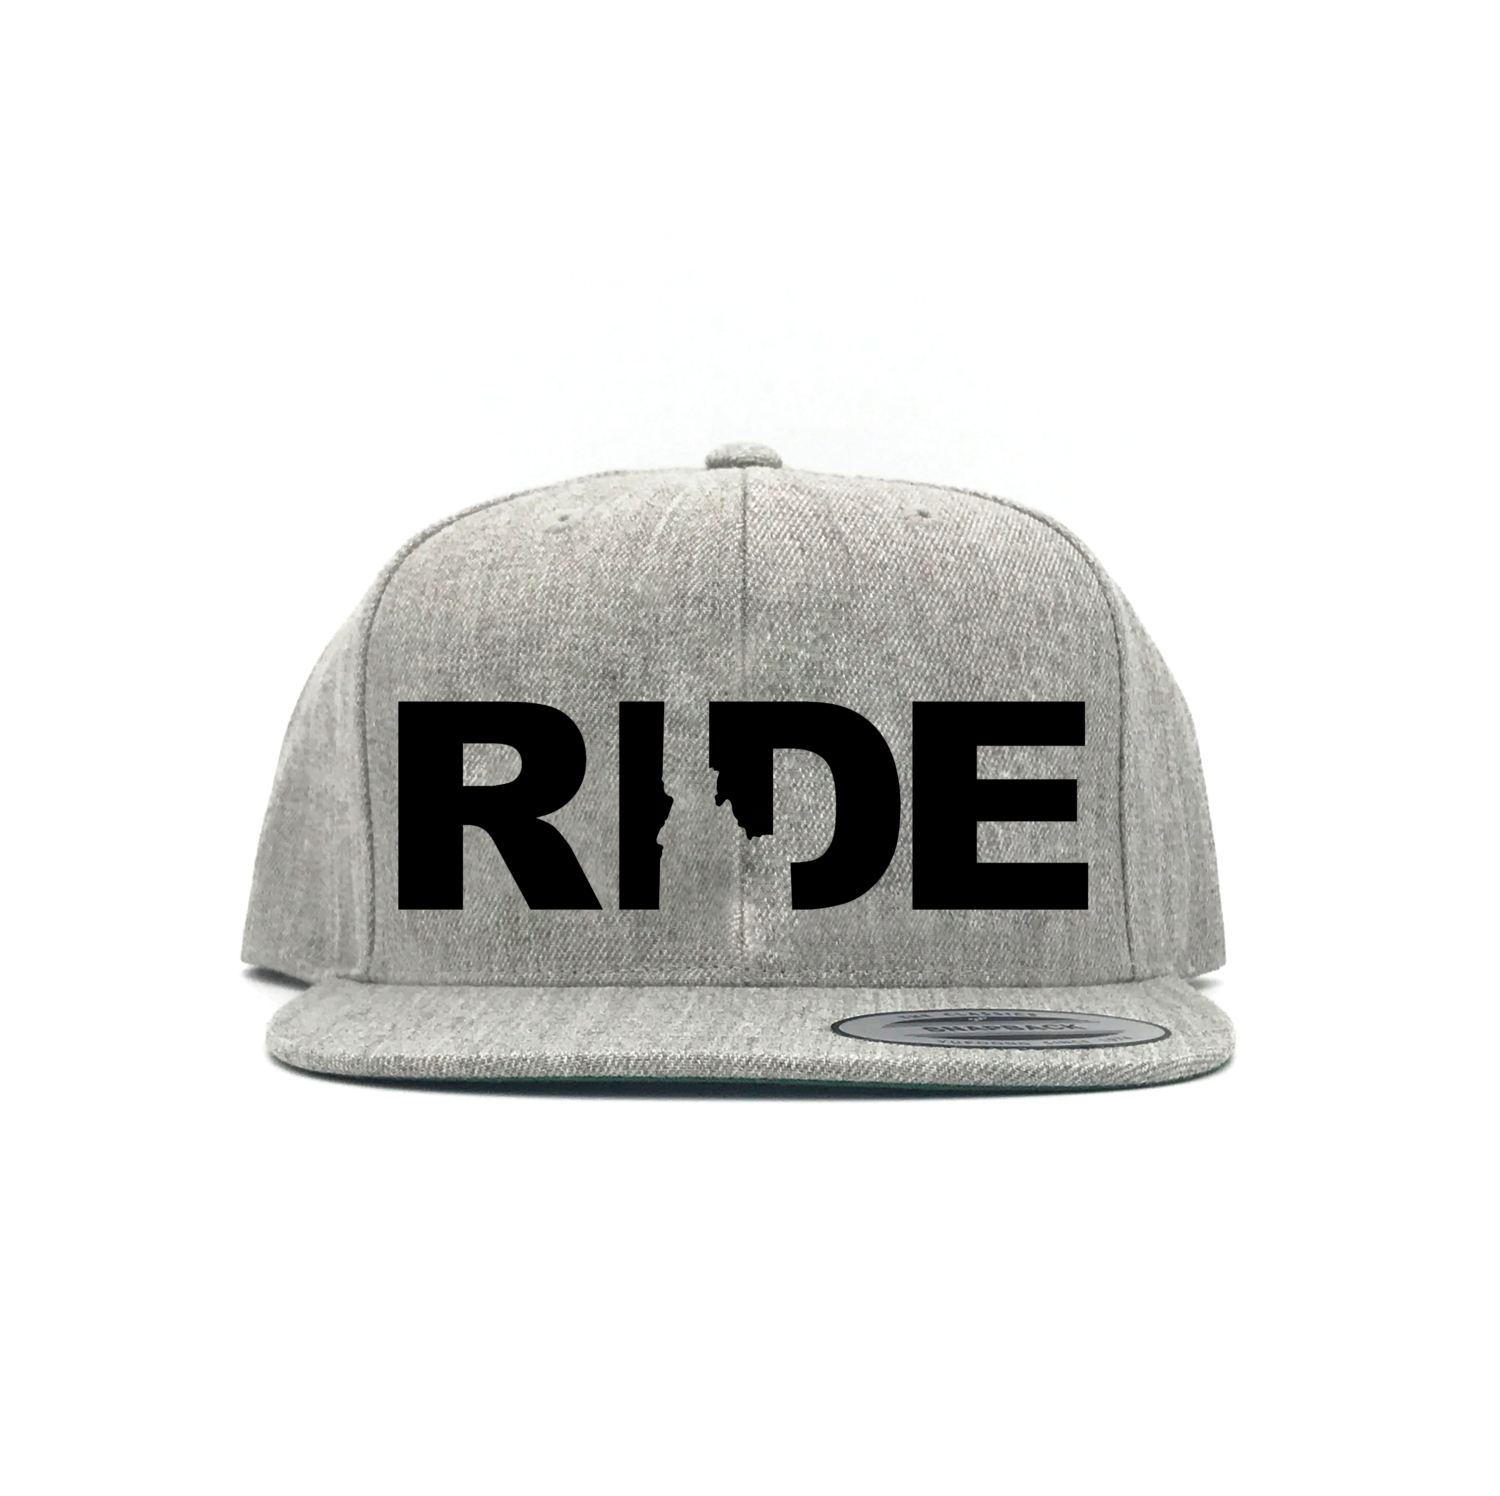 Ride Idaho Classic Embroidered  Snapback Flat Brim Hat Gray/Black